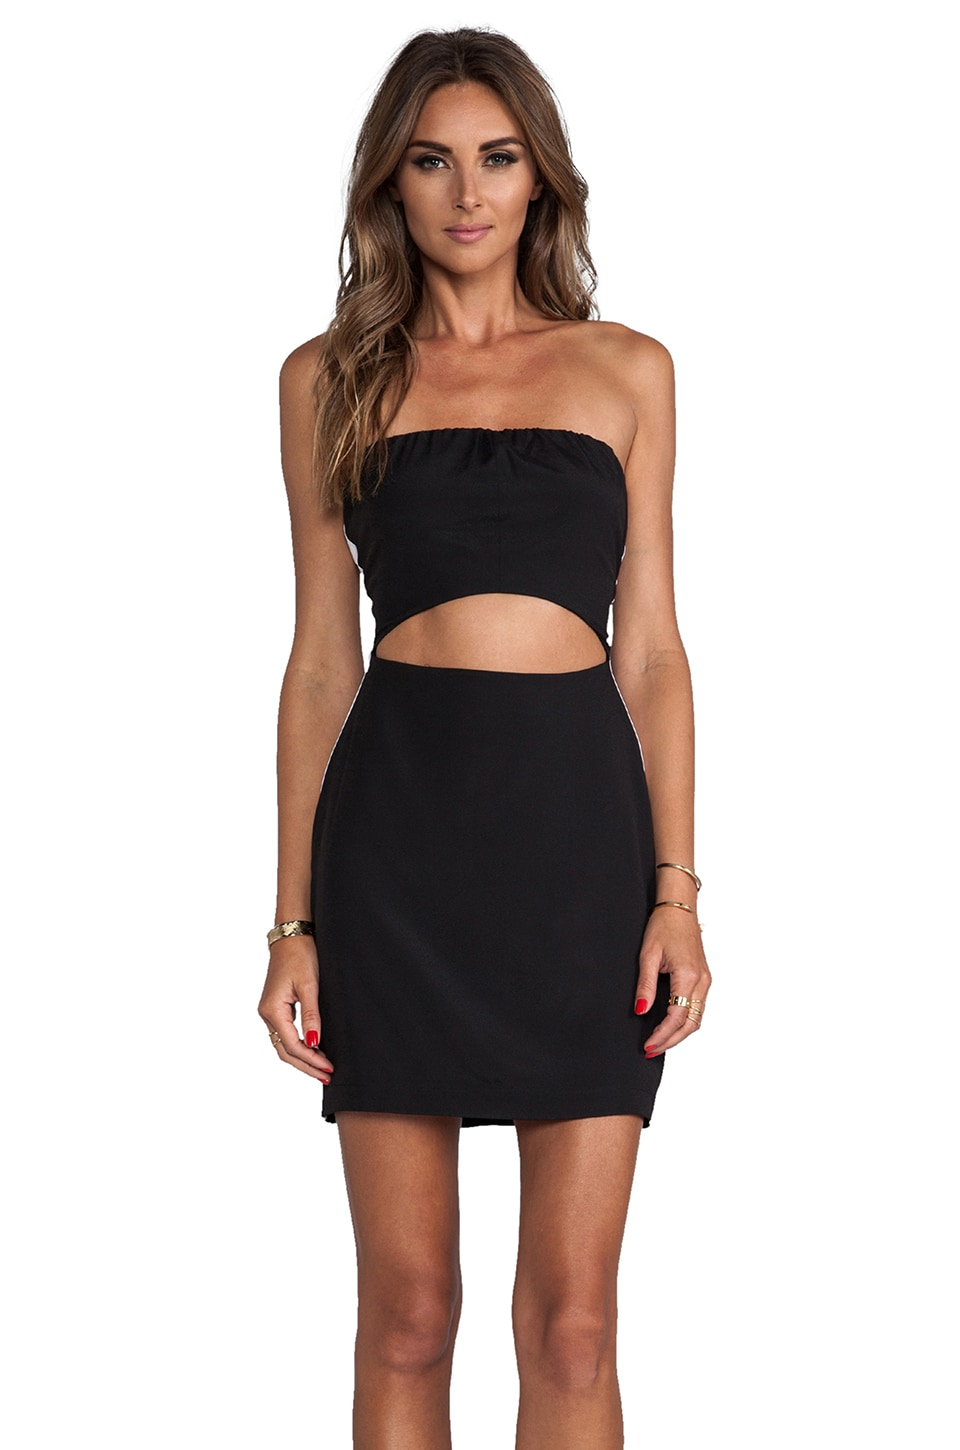 Naven Neon Collection Sporty Tube Cutout Dress in Black/White